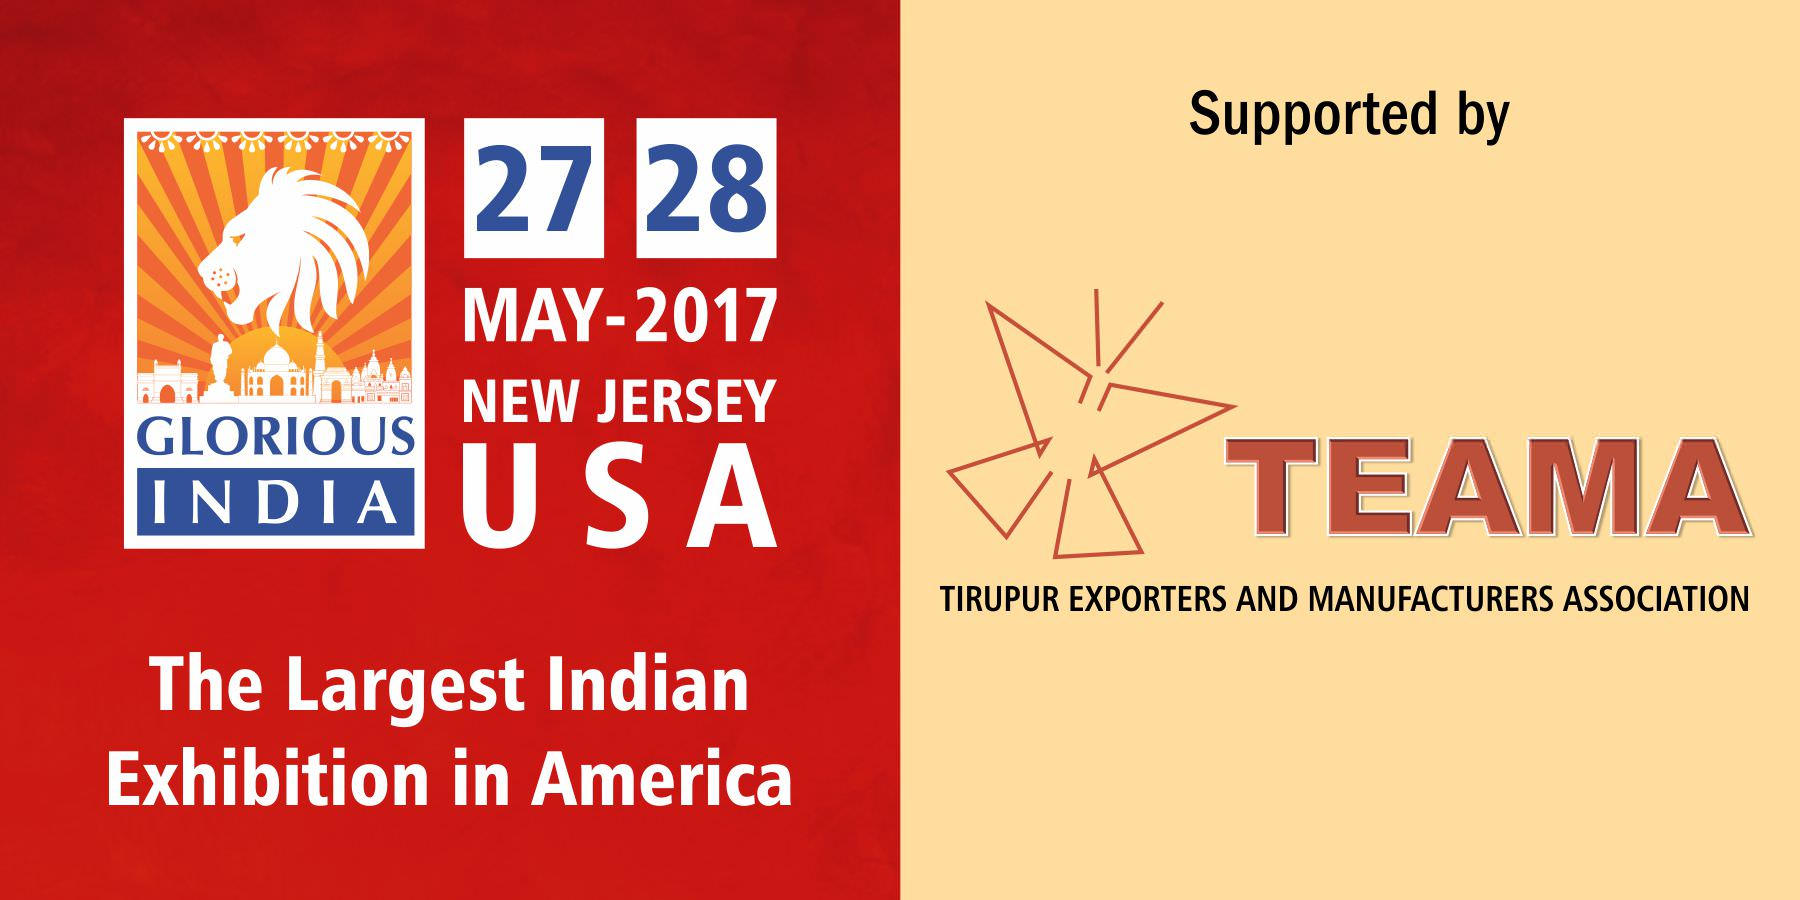 Glorious India Expo - Tiruppur Exporters Manufacturers Association (TEAMA)